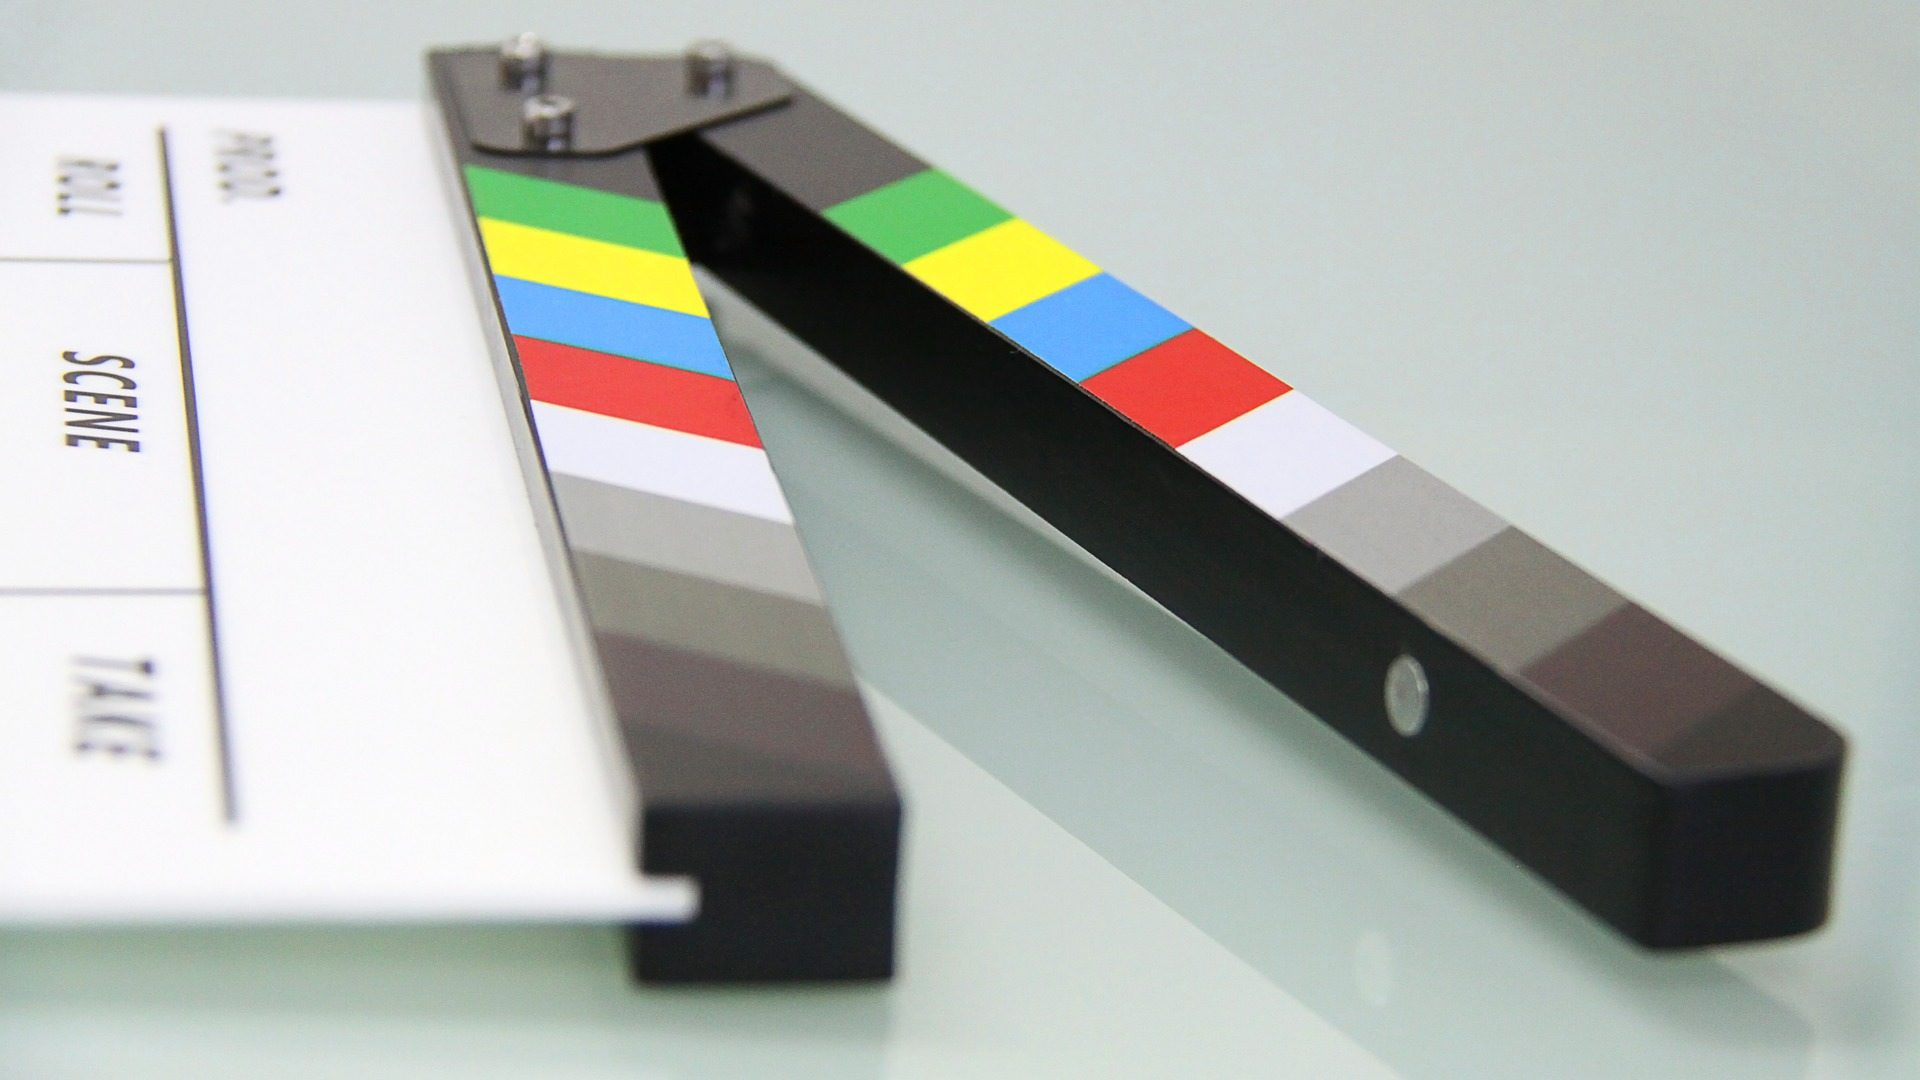 Whitney Media Productions specializes in producing corporate video in Orlando, Florida